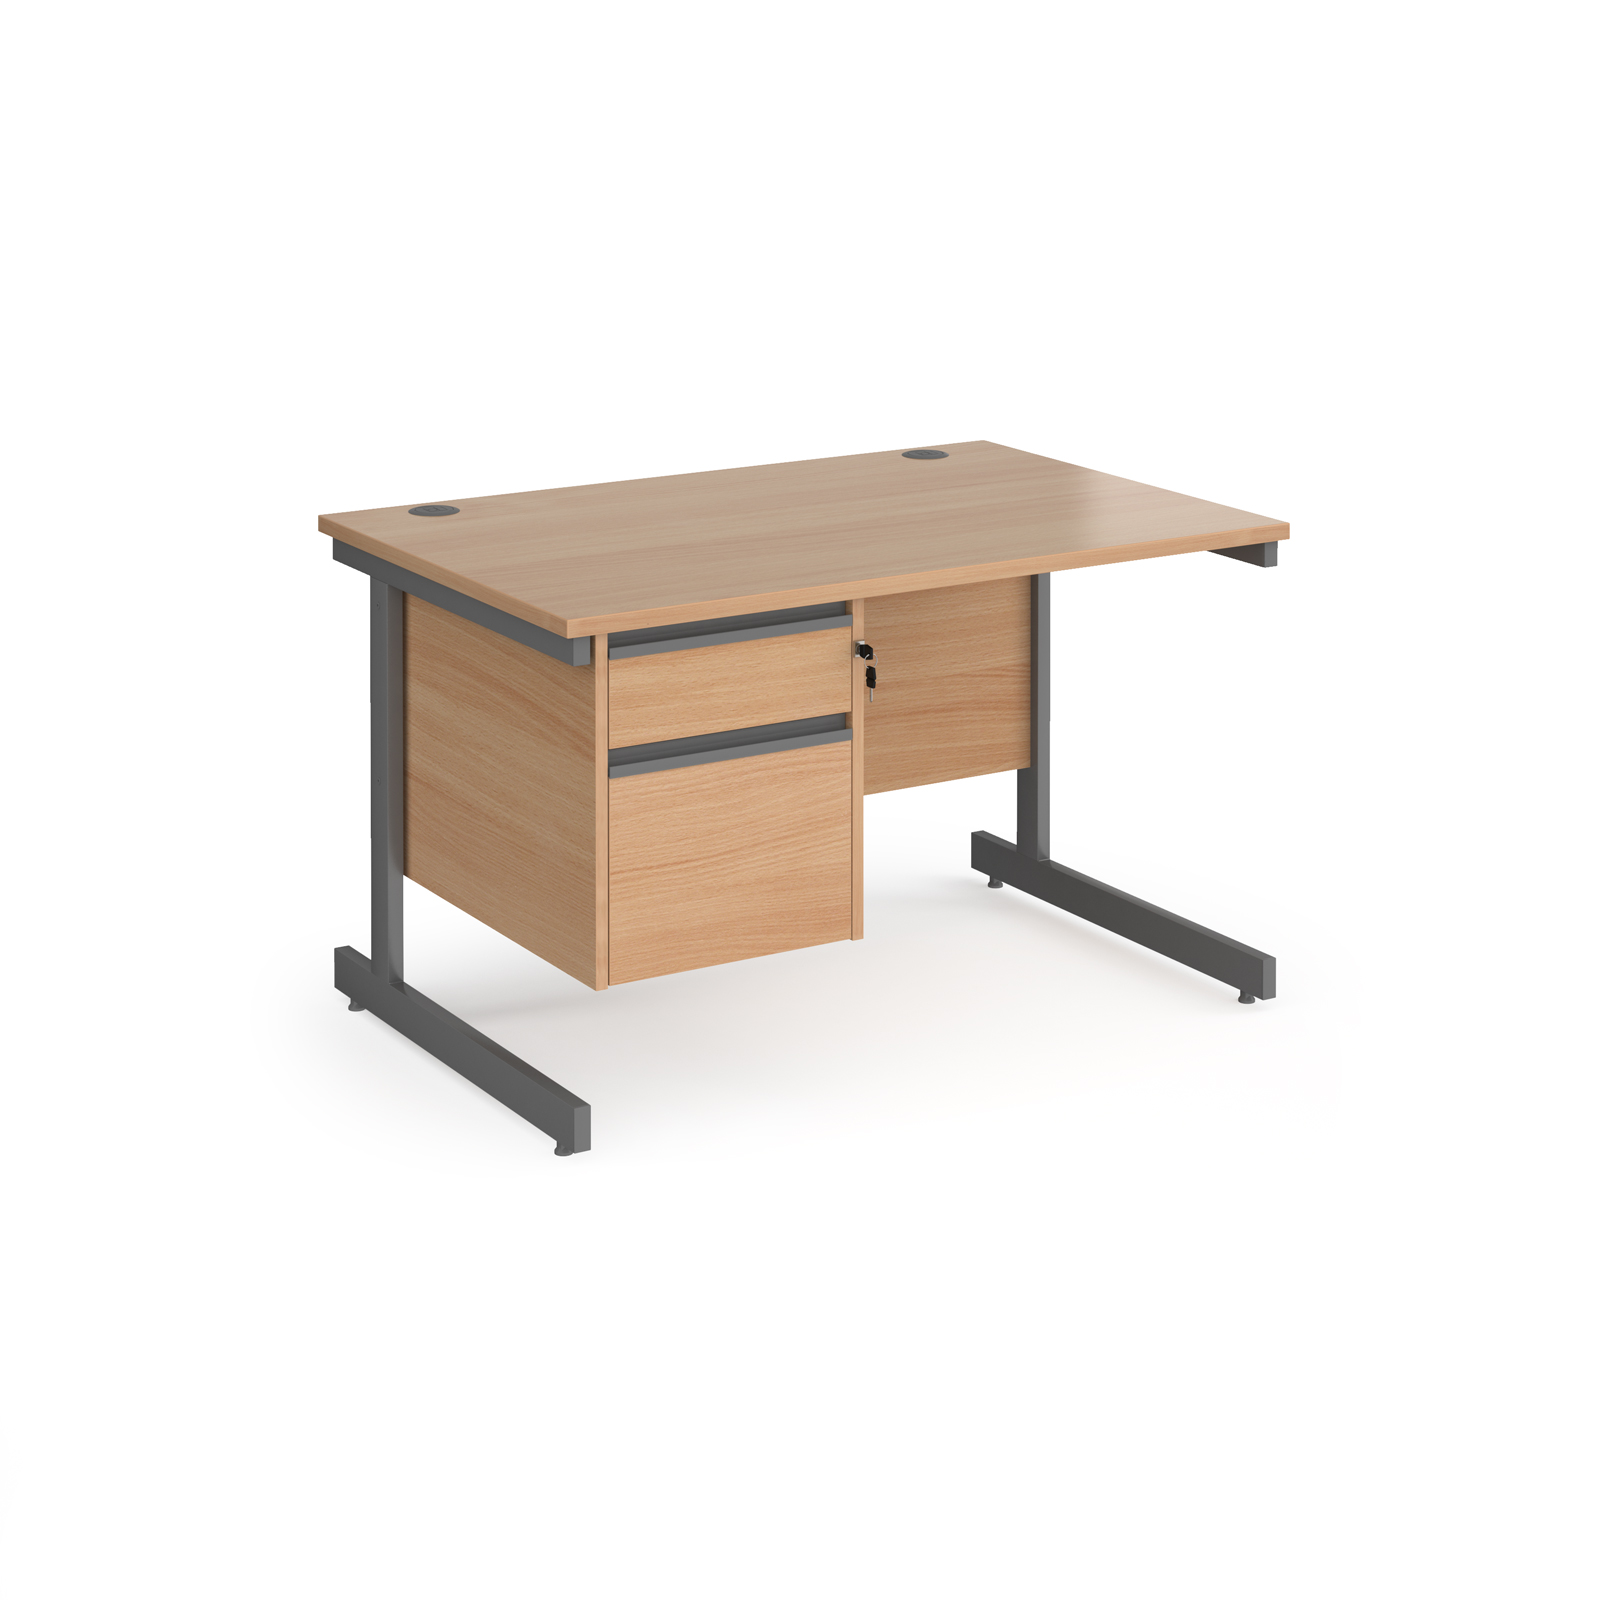 Contract 25 cantilever leg straight desk with 2 drawer pedestal